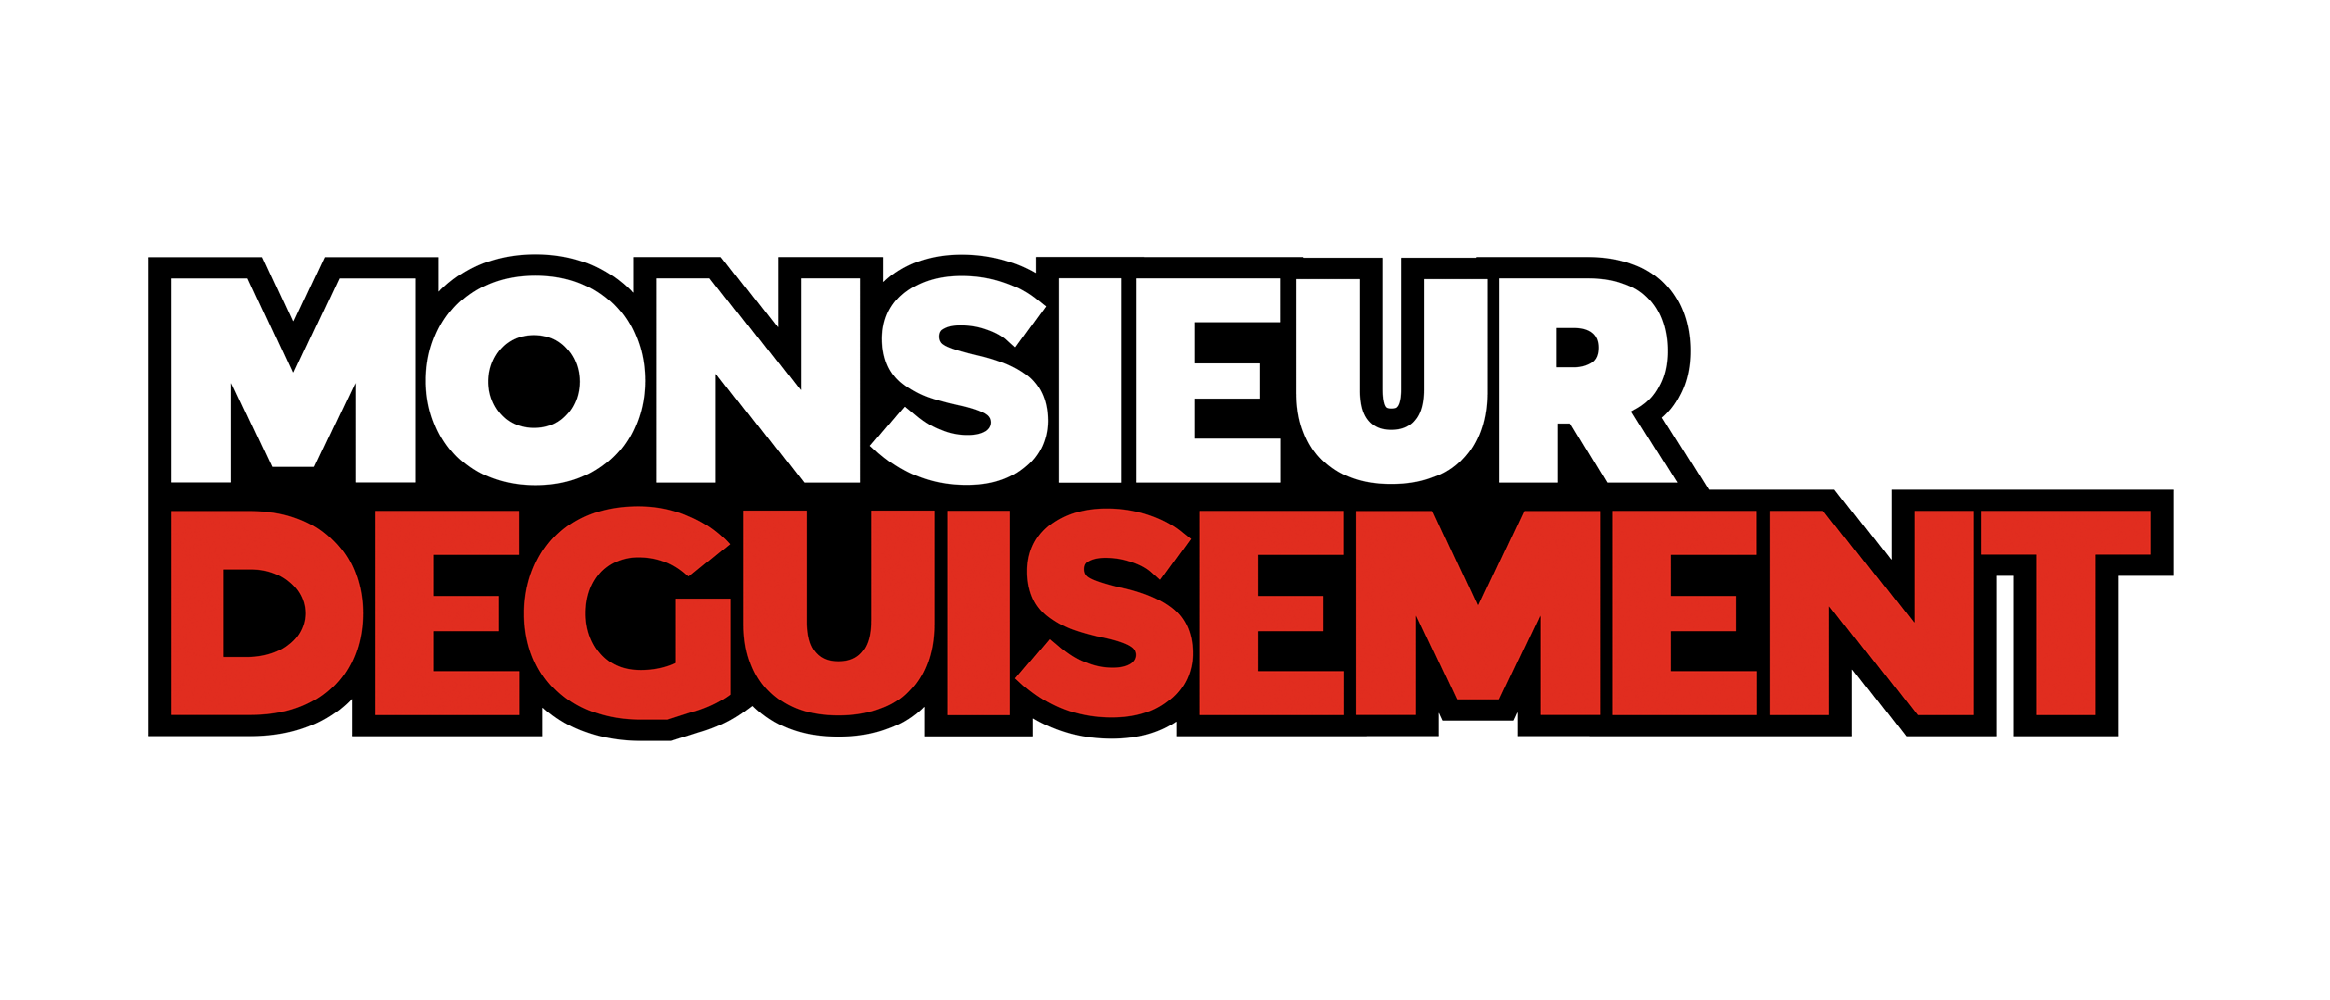 Monsieurdeguisement.com